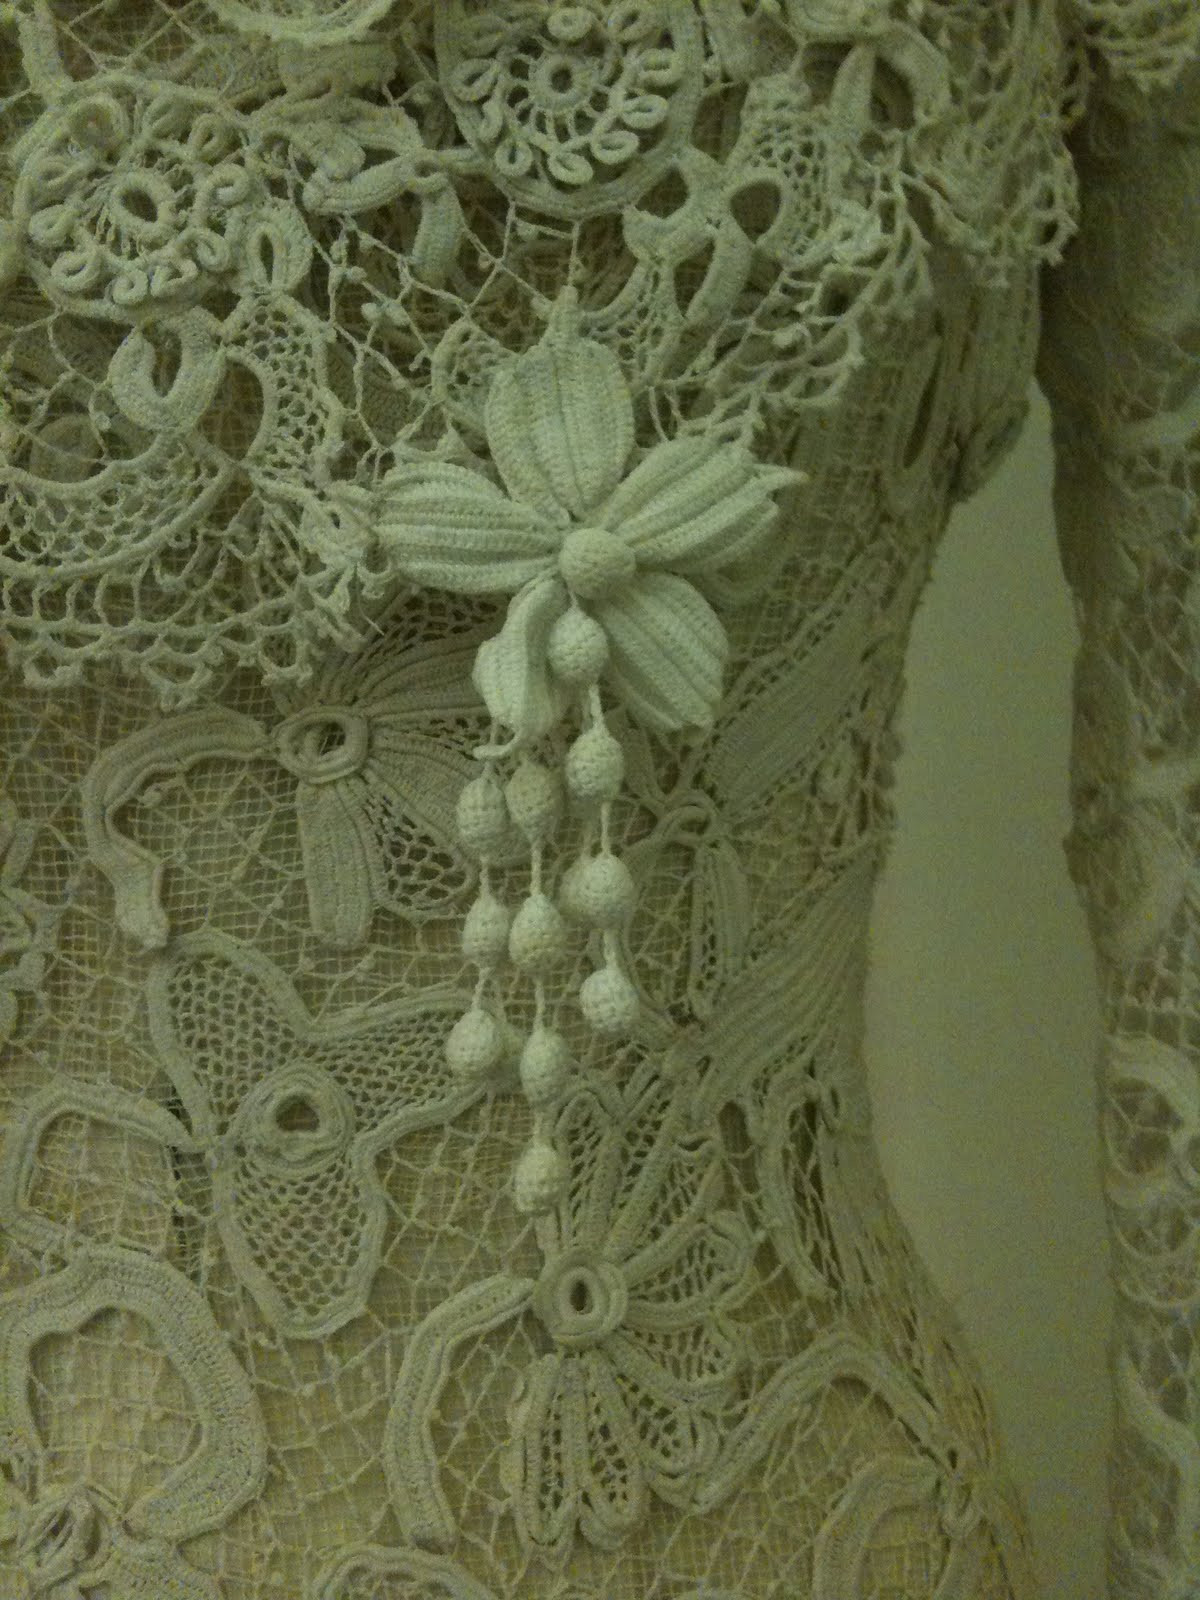 Best Of Rosemary Cathcart Antique Lace and Vintage Fashion the Irish Lace Of Incredible 40 Ideas Irish Lace